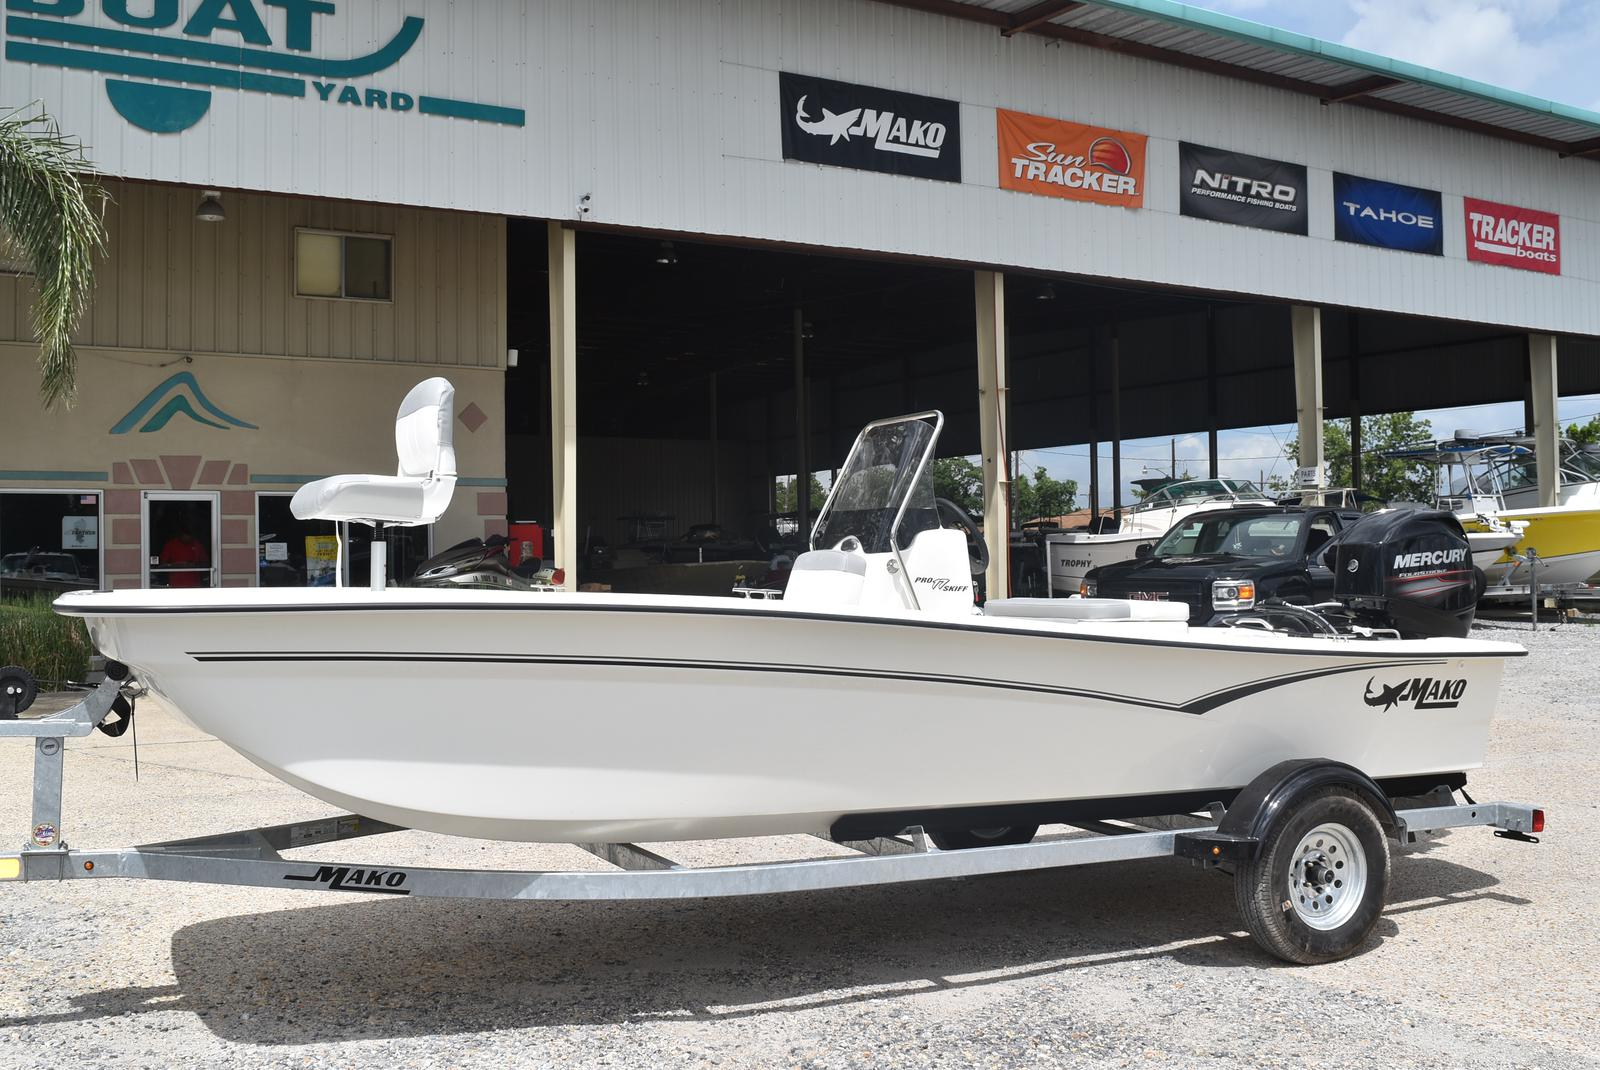 2020 Mako boat for sale, model of the boat is Pro Skiff 17, 75 ELPT & Image # 83 of 702